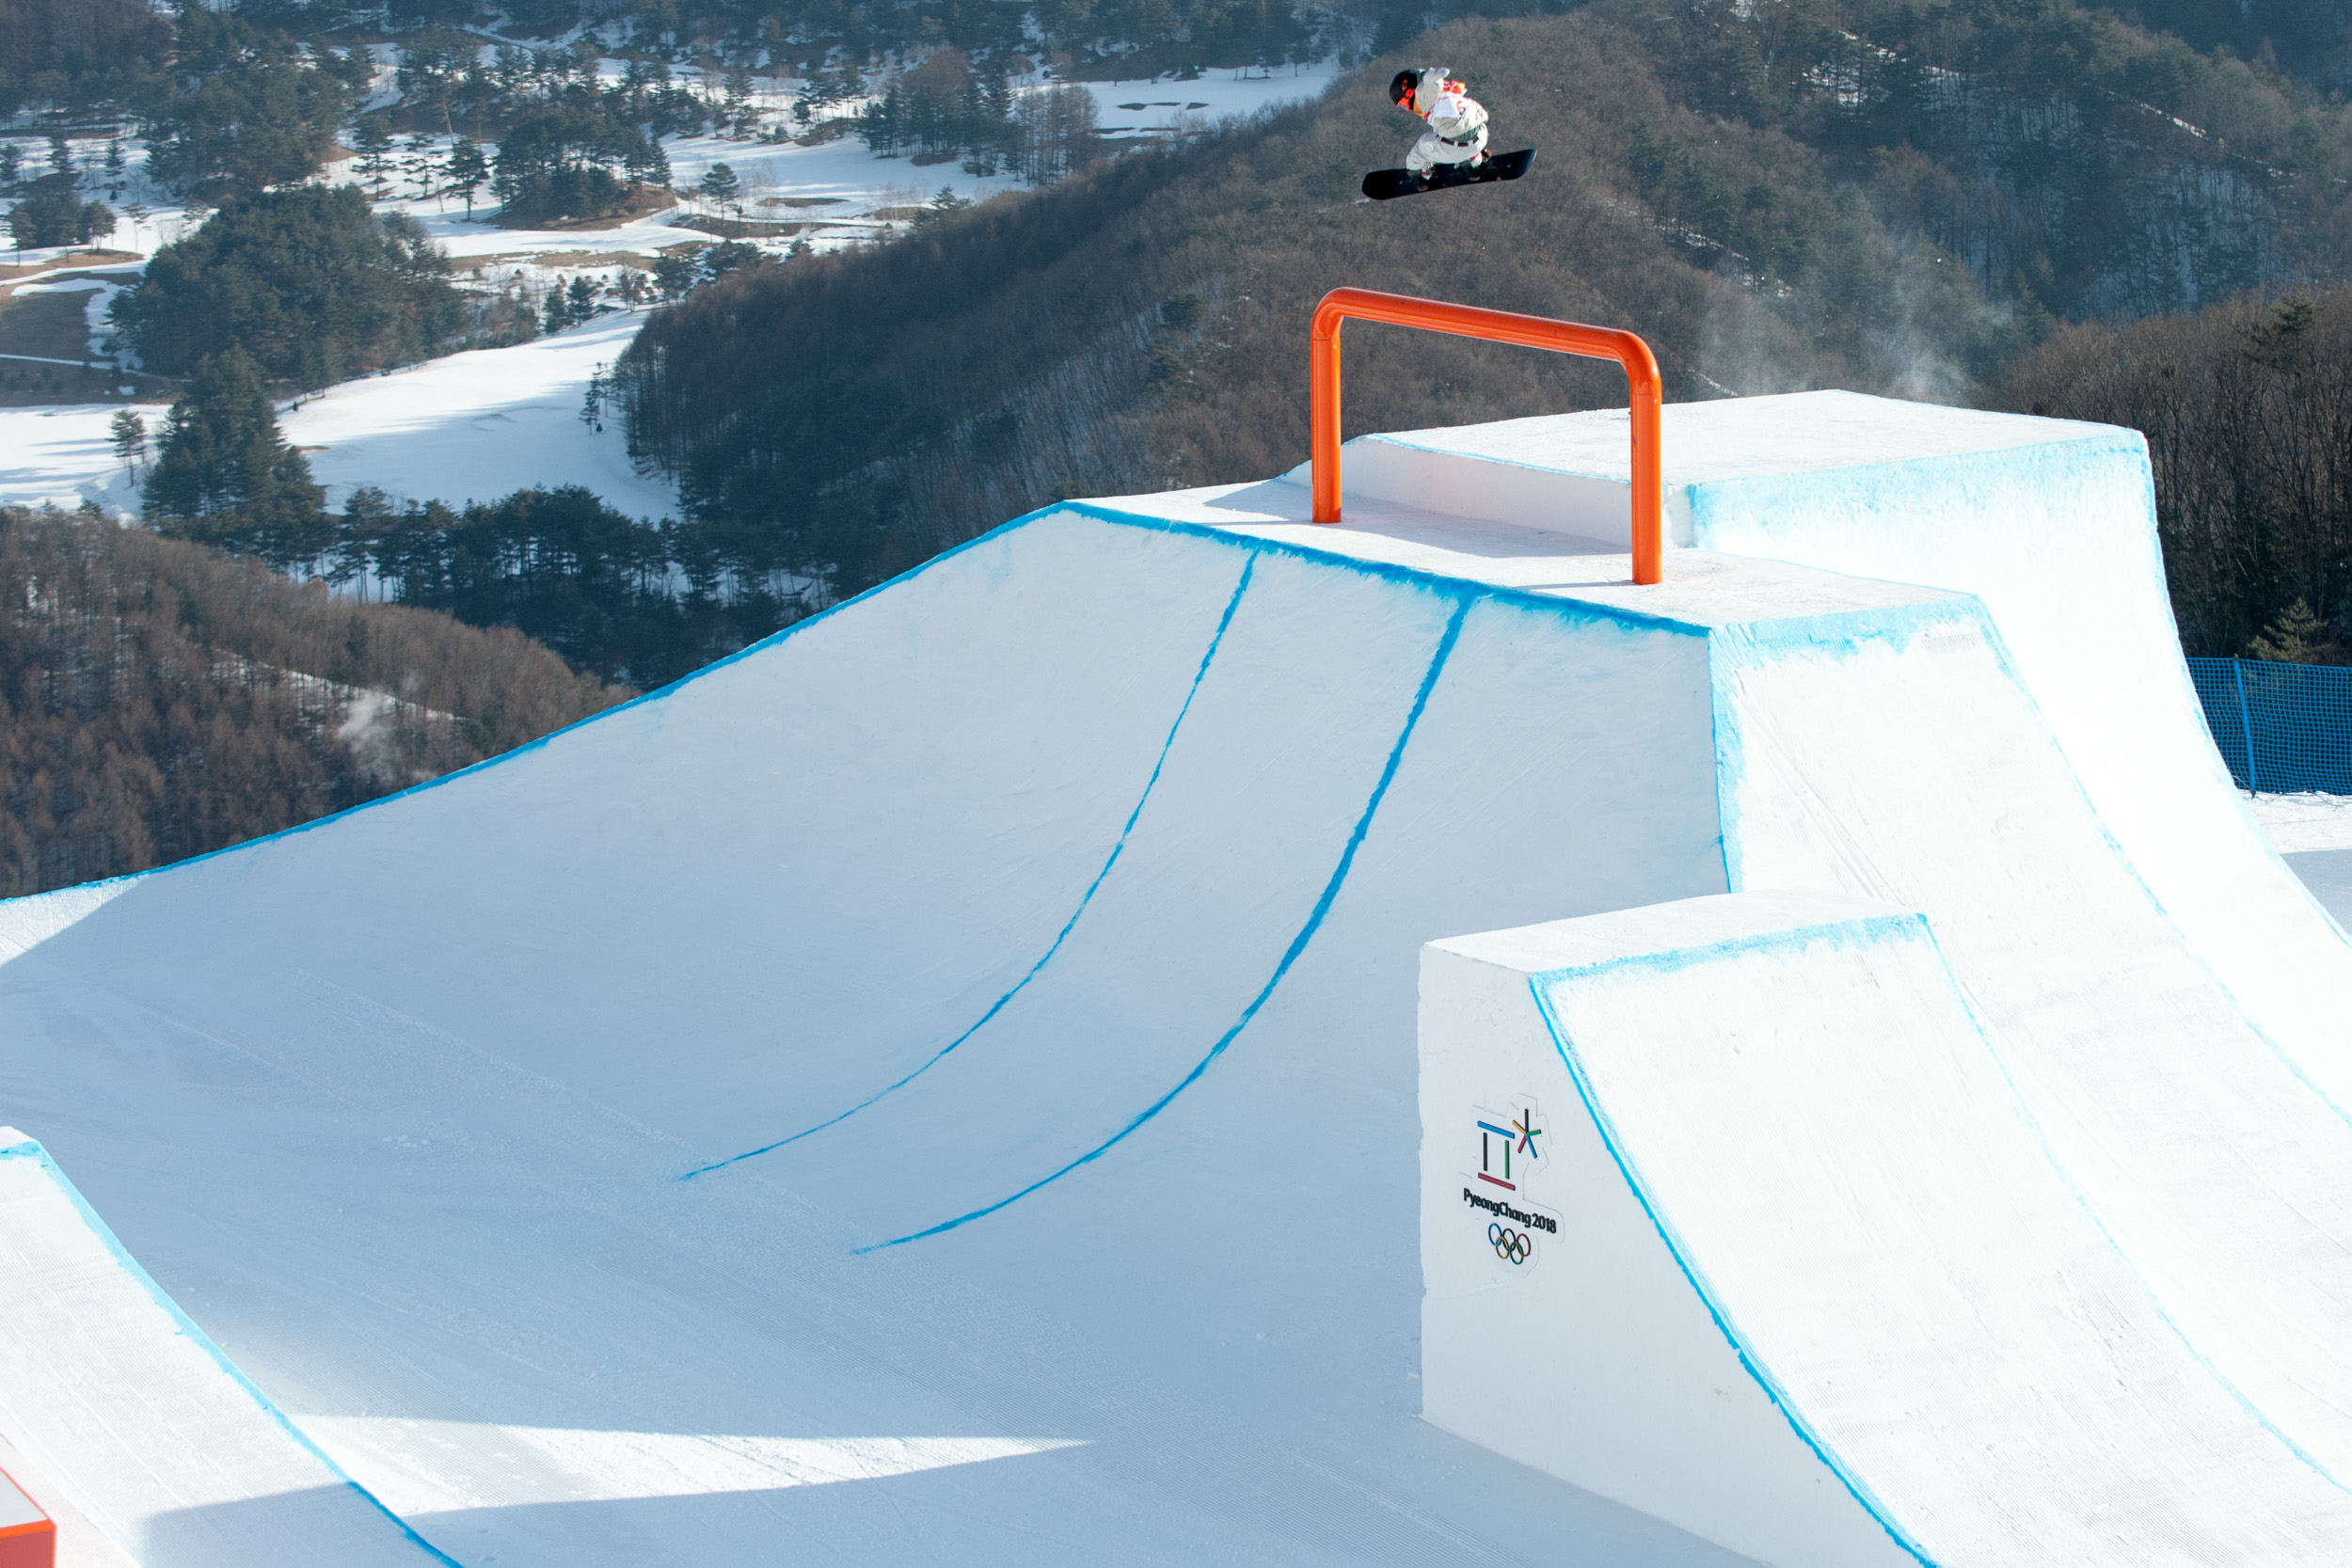 Red Gerard becomes youngest Olympian to medal in snowboarding